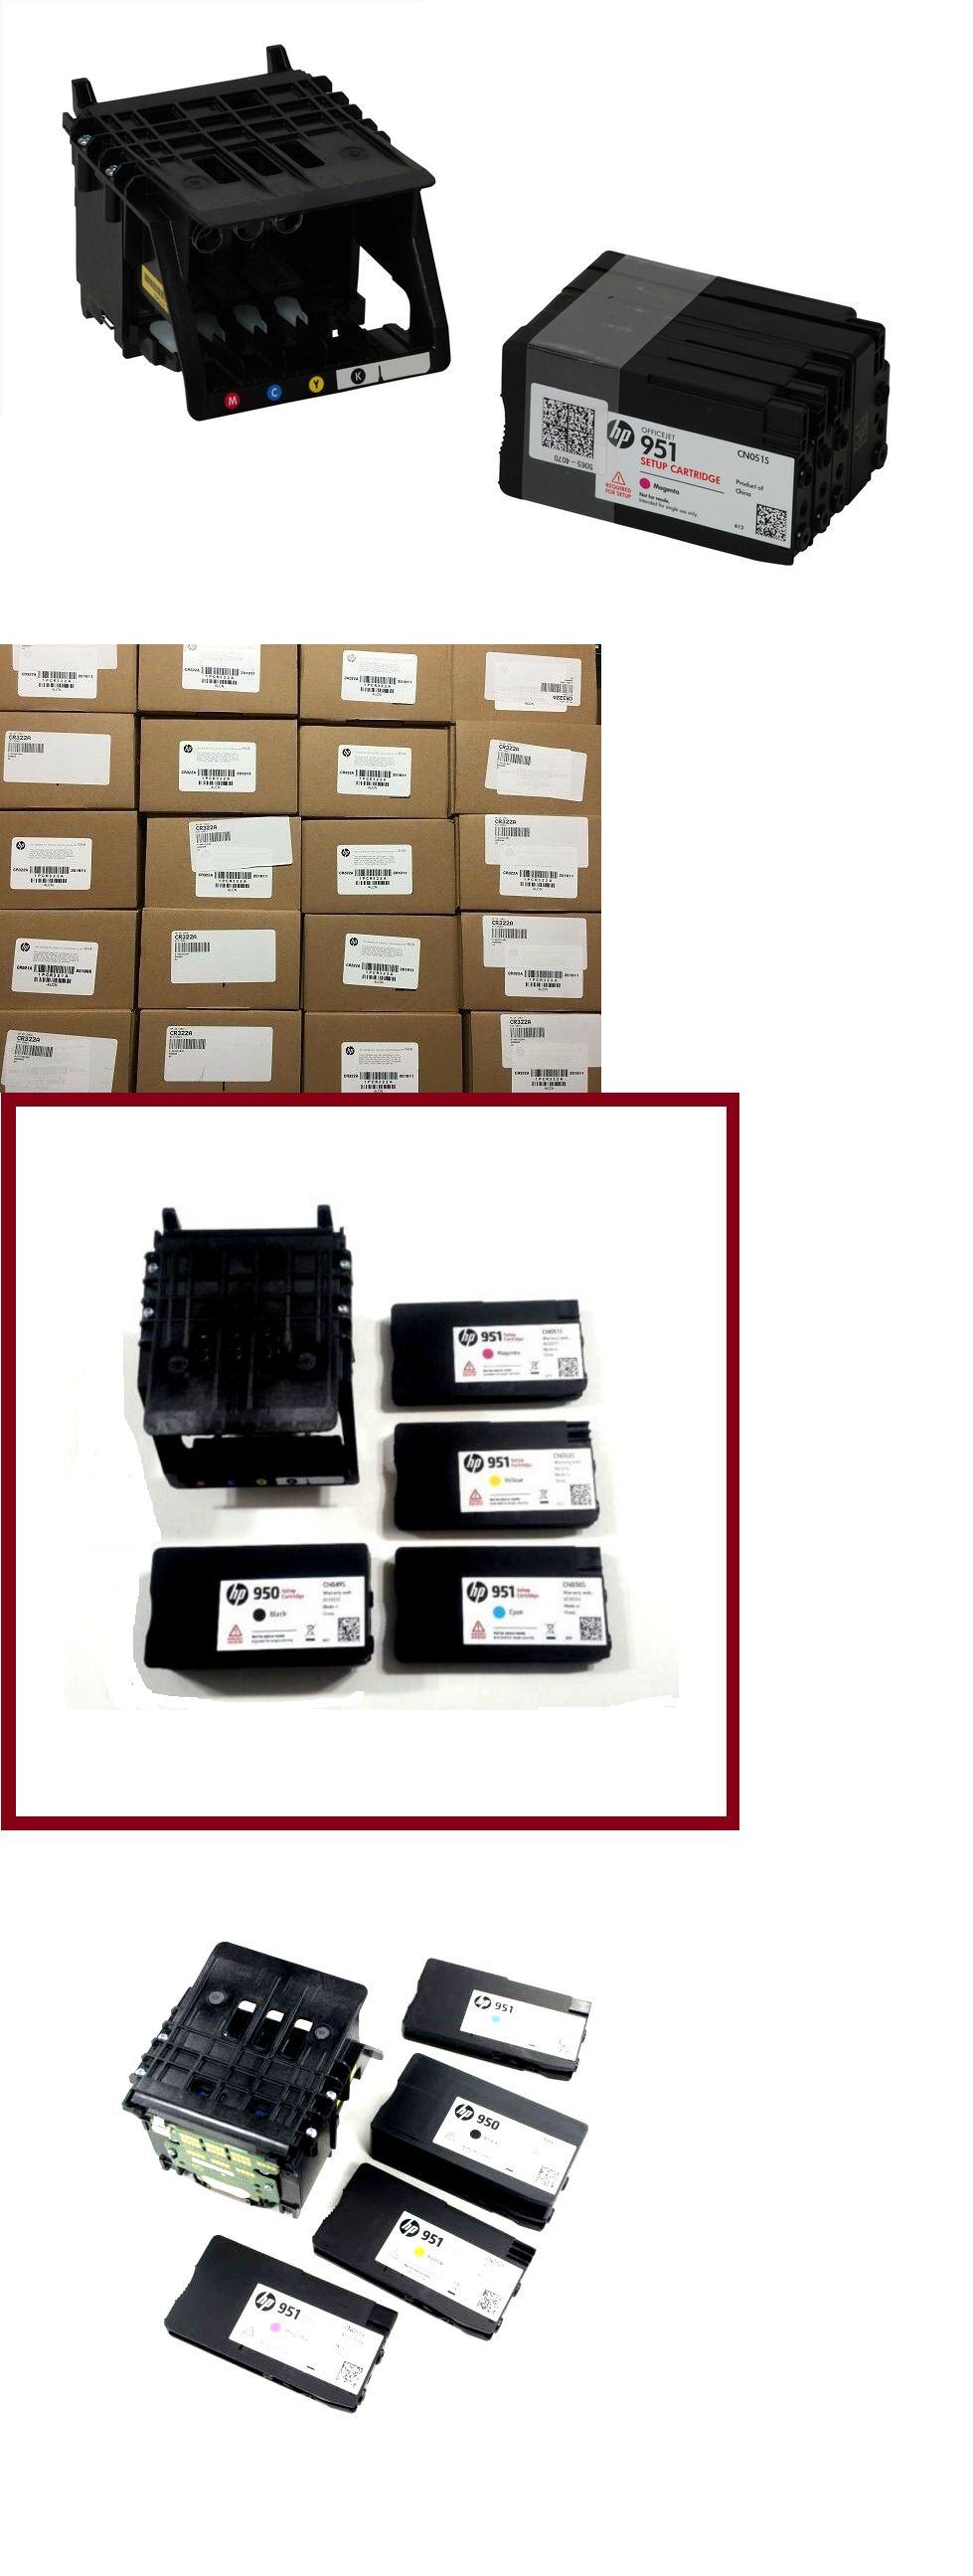 Print Heads 51328: New Genuine Hp Officejet Pro 8600